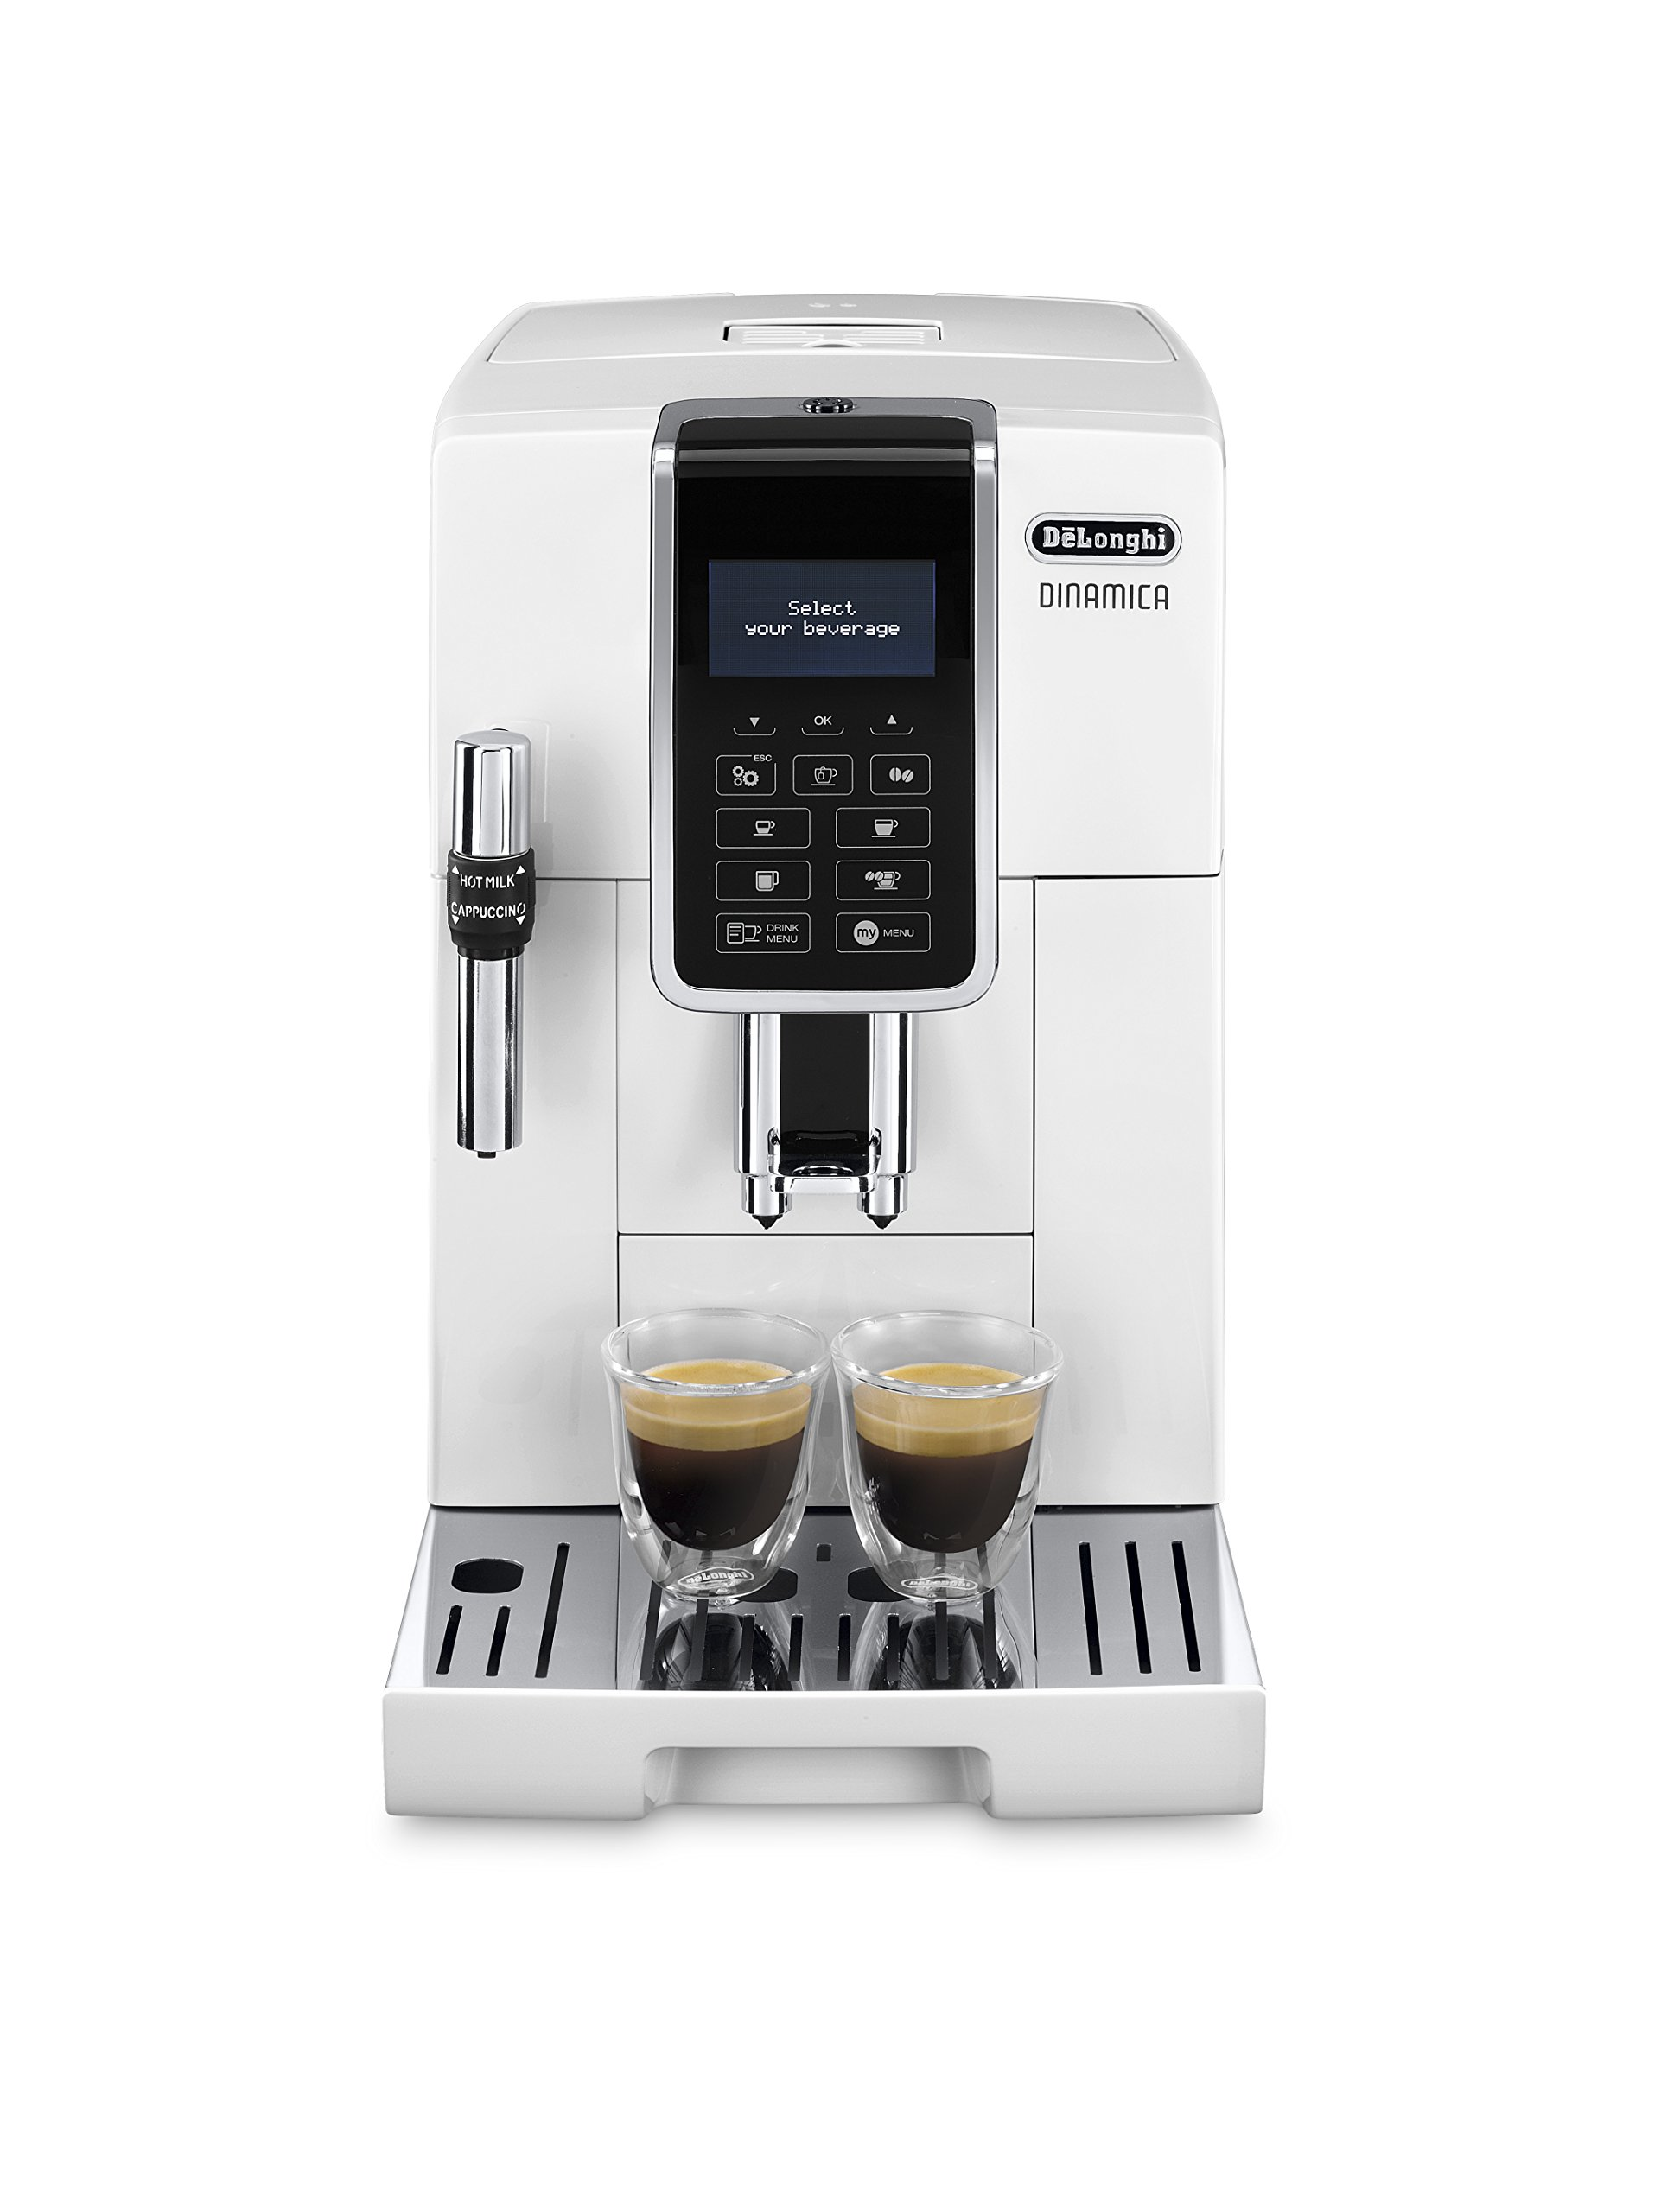 DeLonghi-Dinamica-ECAM-35035W-Bean-to-Cup-White